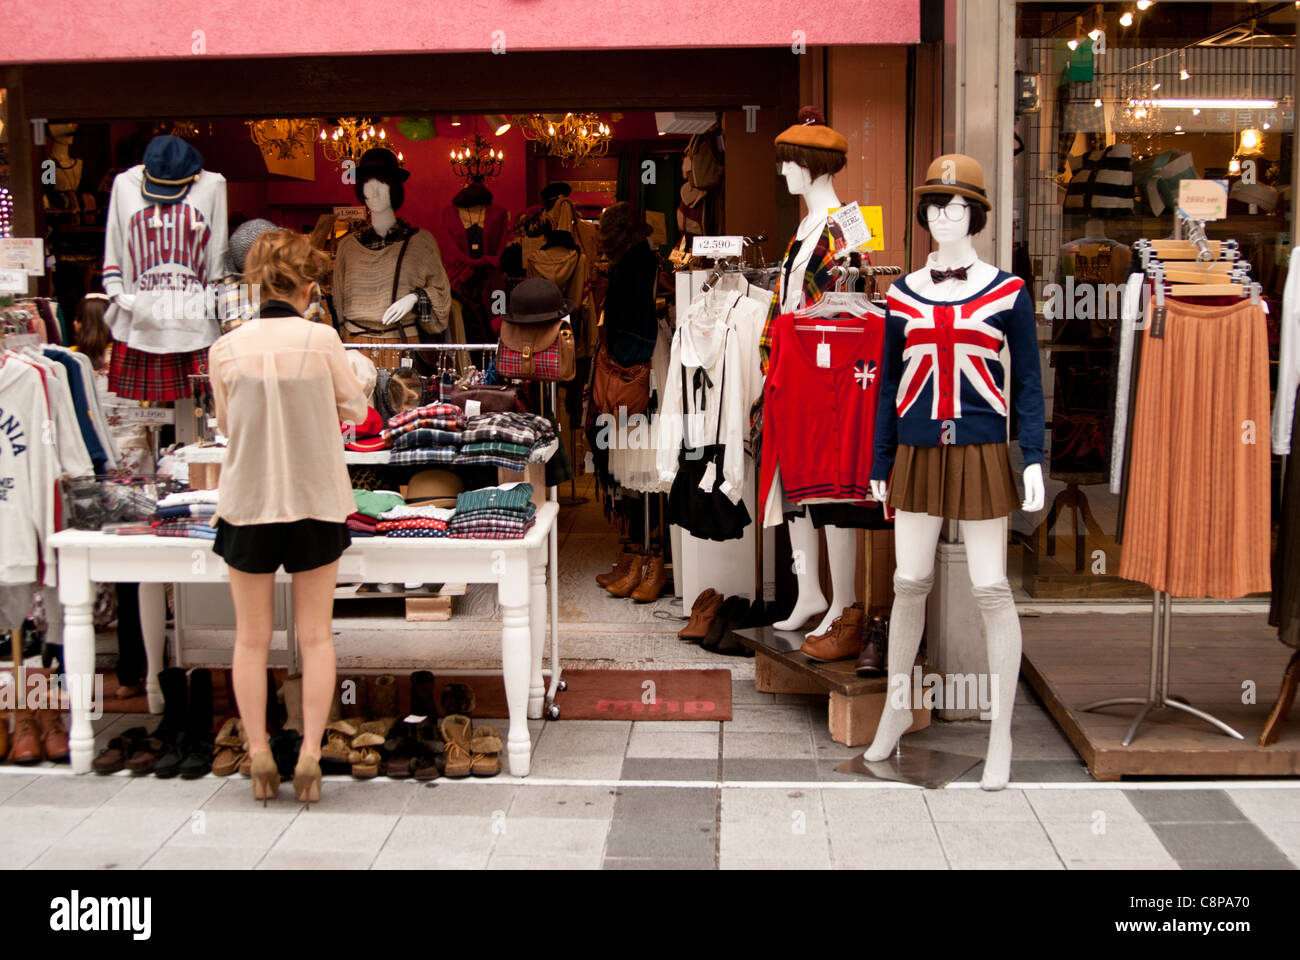 7d491b75556 A young shop assistant tending to a display at a womens fashion store,  Nagoya, Aichi, Japan